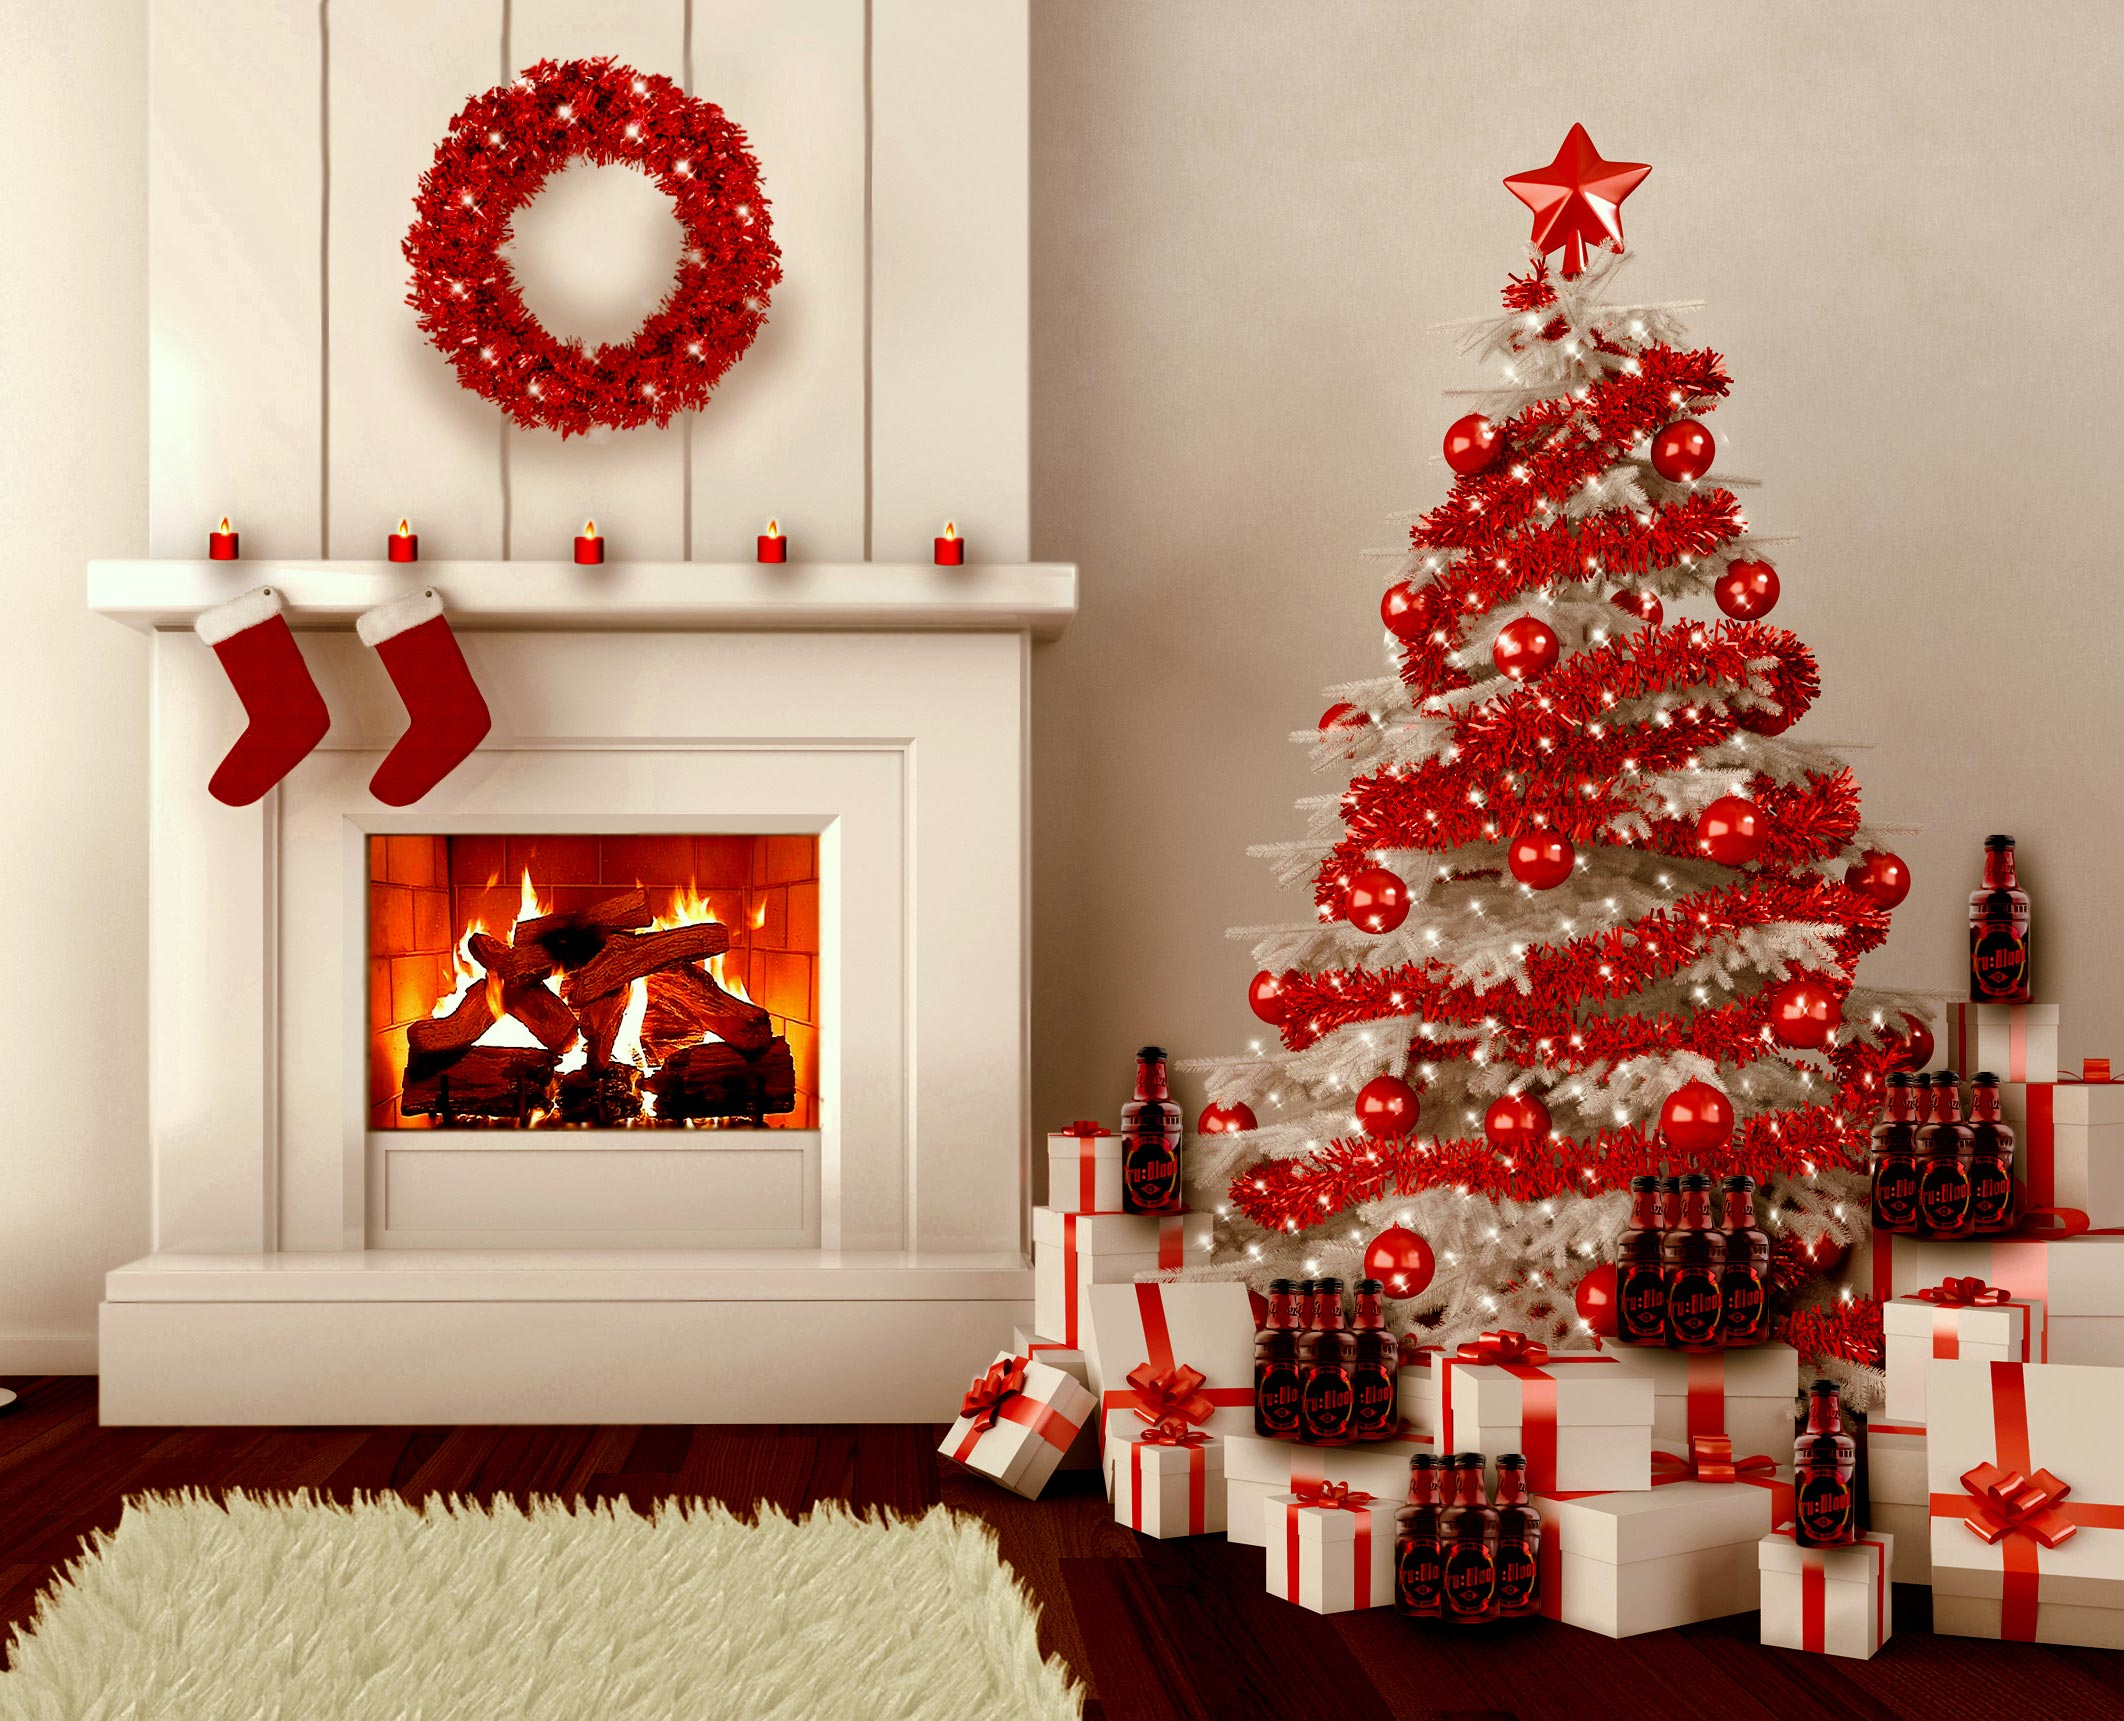 red christmas tree decorations ideas - Christmas Tree Decorating Ideas 2016